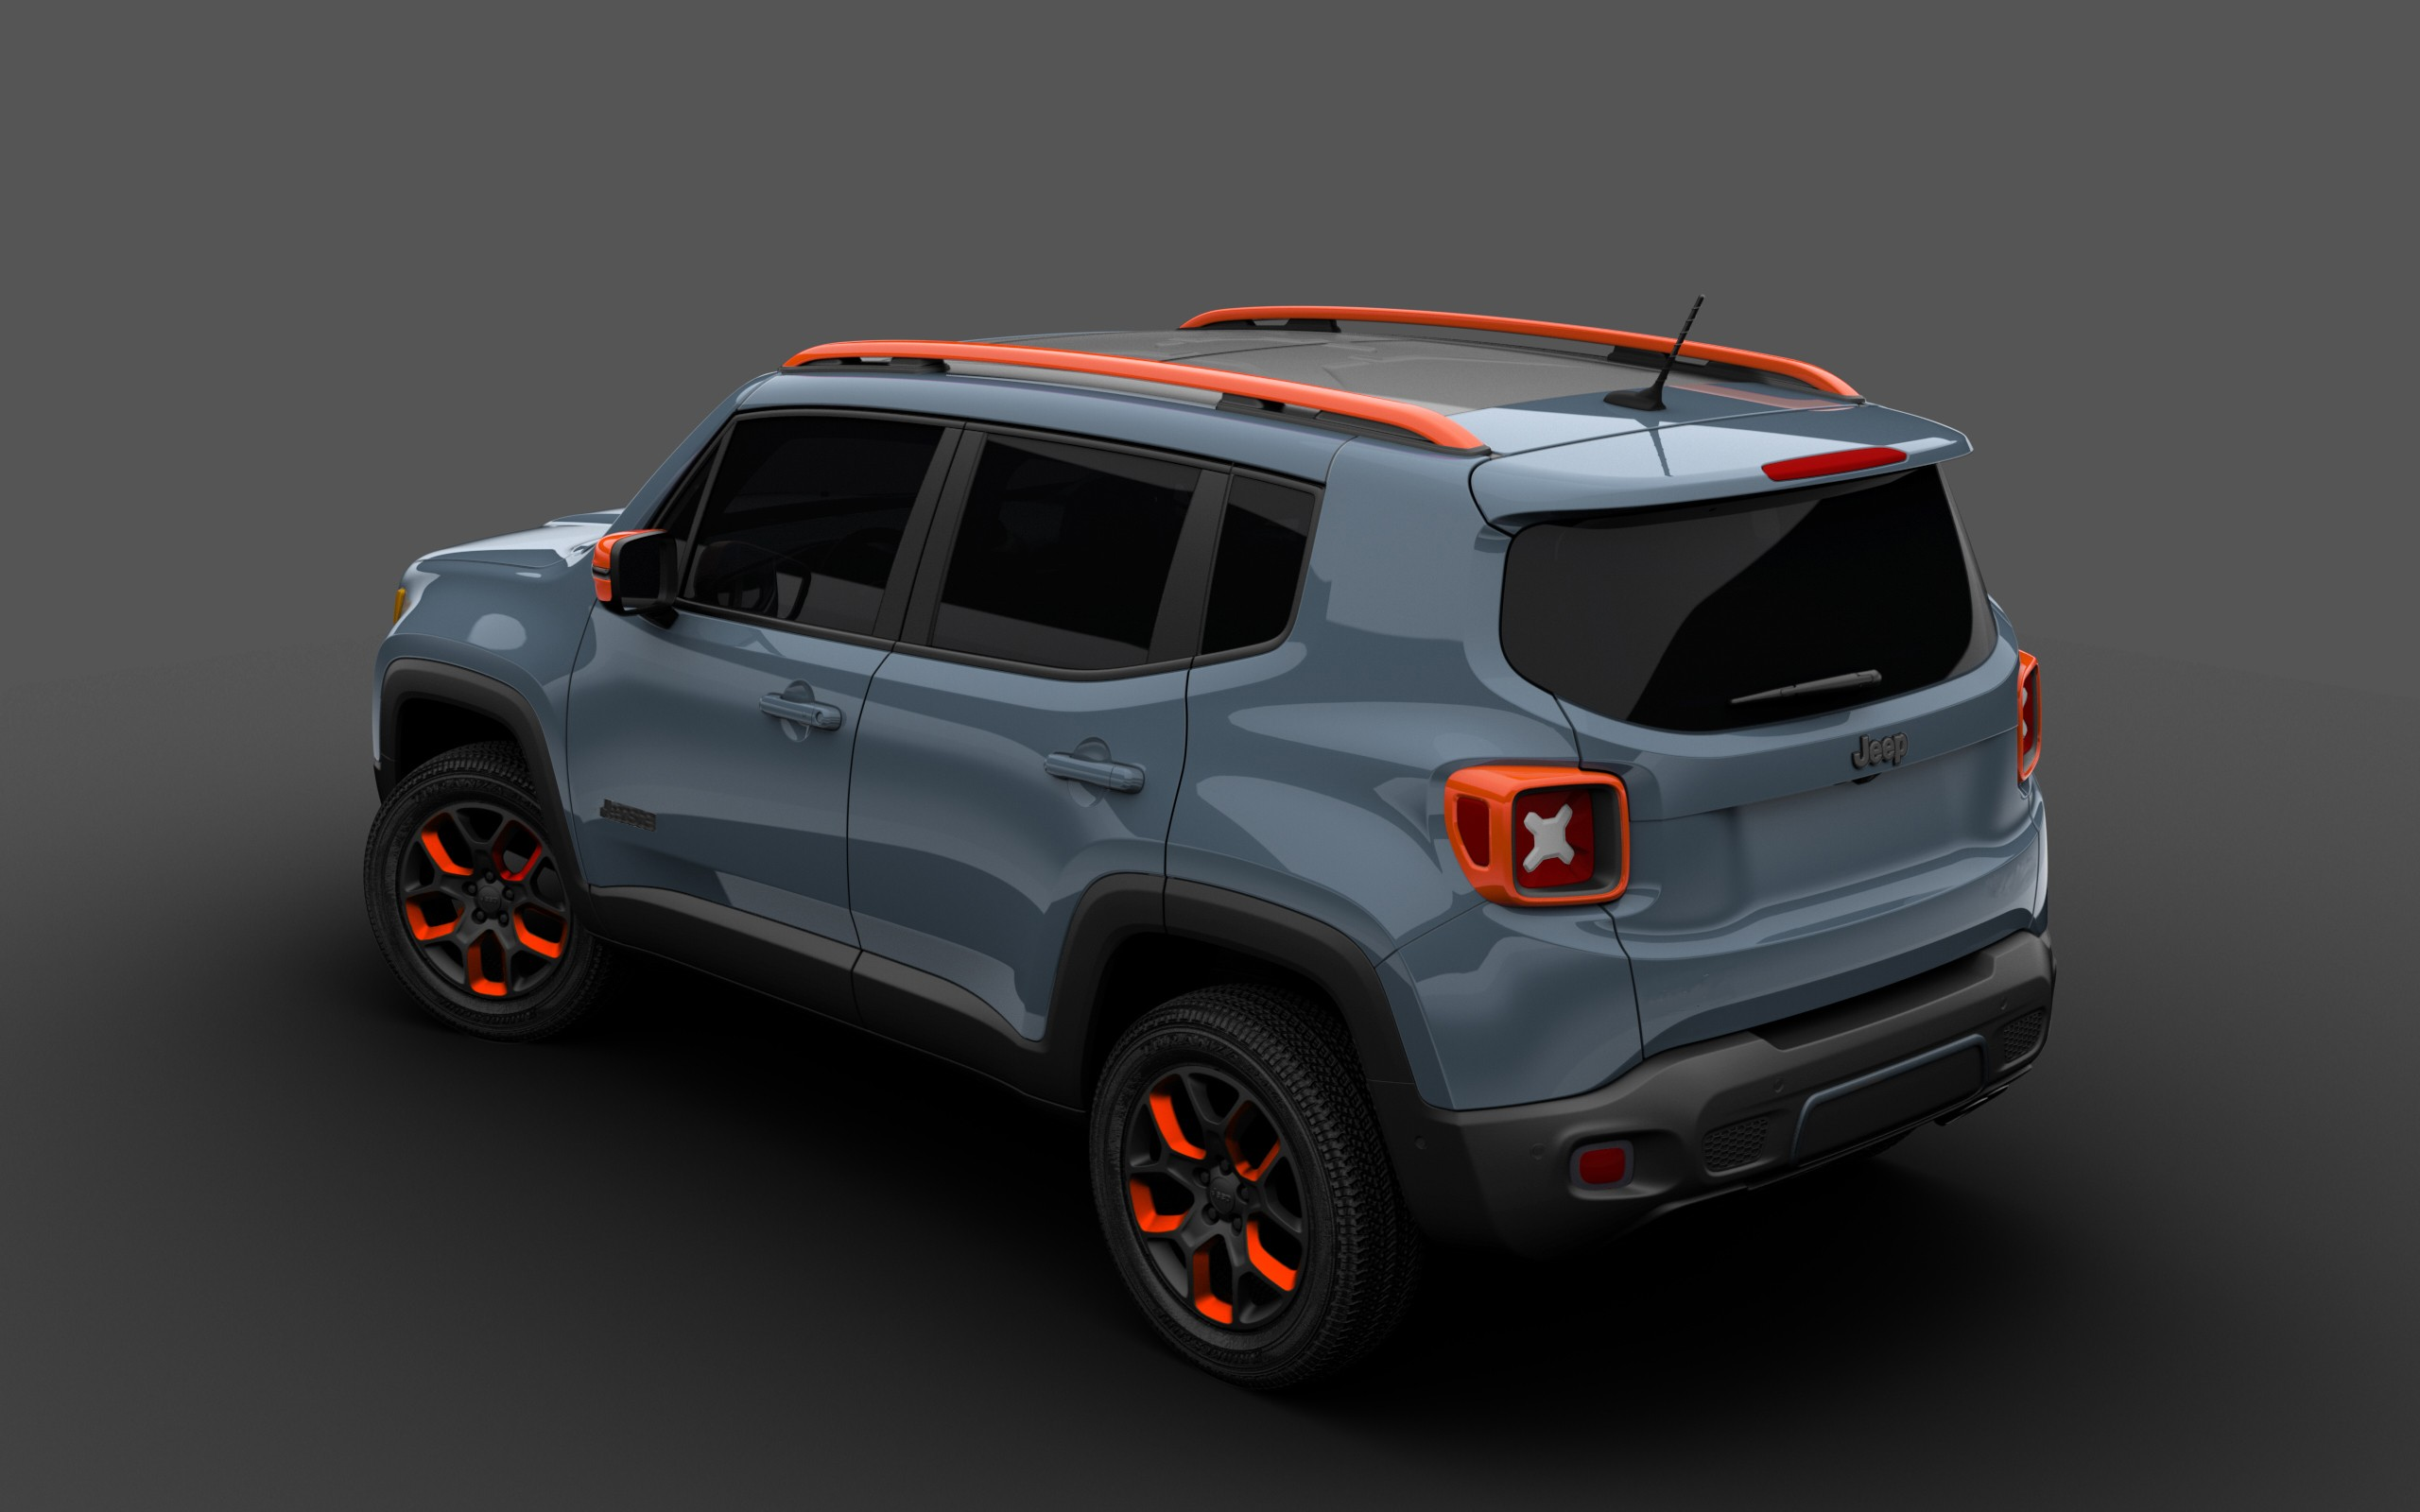 2015 jeep renegade receives mopar goodies for 2015 detroit auto show autoevolution. Black Bedroom Furniture Sets. Home Design Ideas